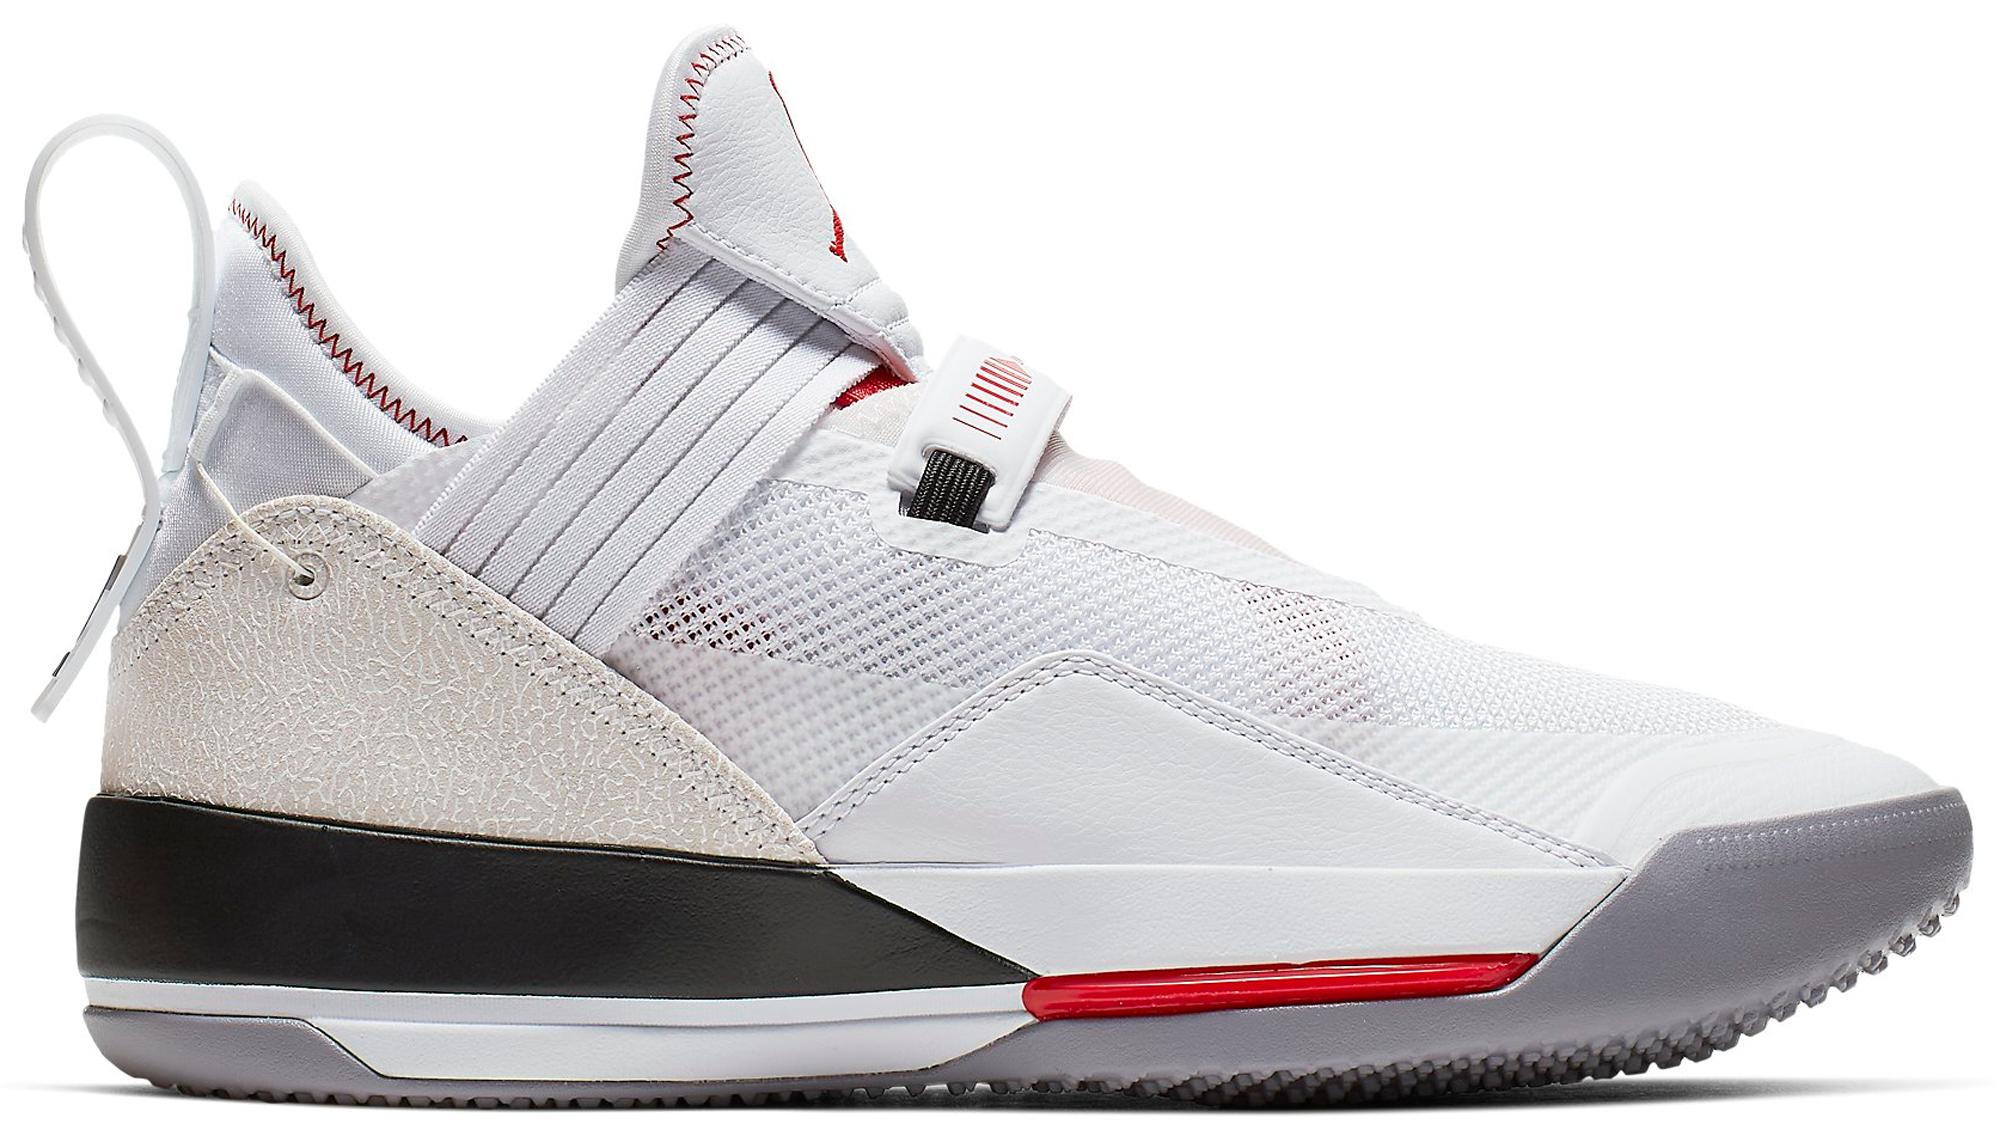 54b2327e Lyst - Nike Xxxiii Se White Gym Red Black in White for Men